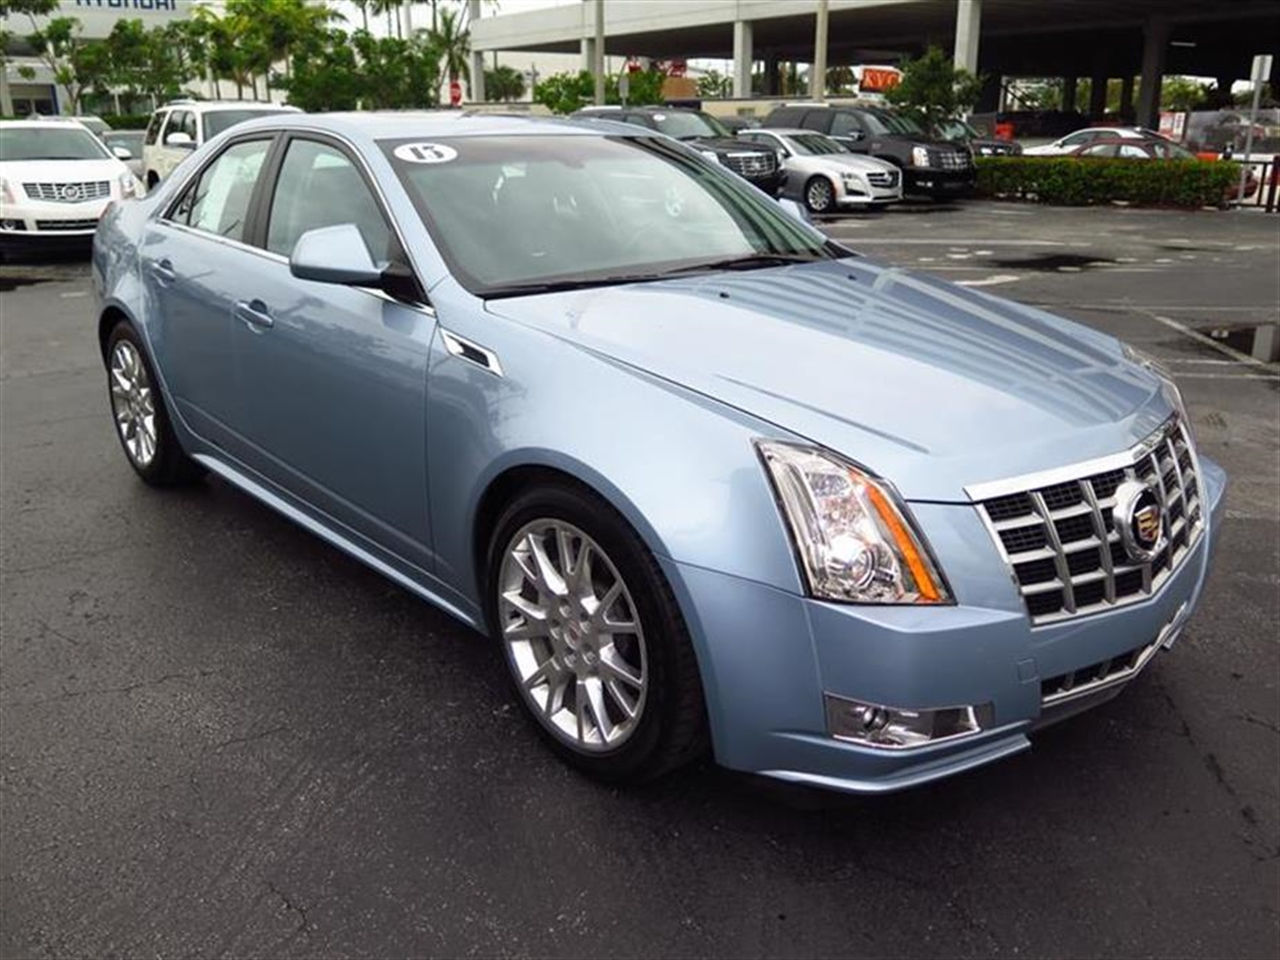 2013 CADILLAC CTS 4dr Sdn 36L Performance RWD 10805 miles Armrest front center rear center with